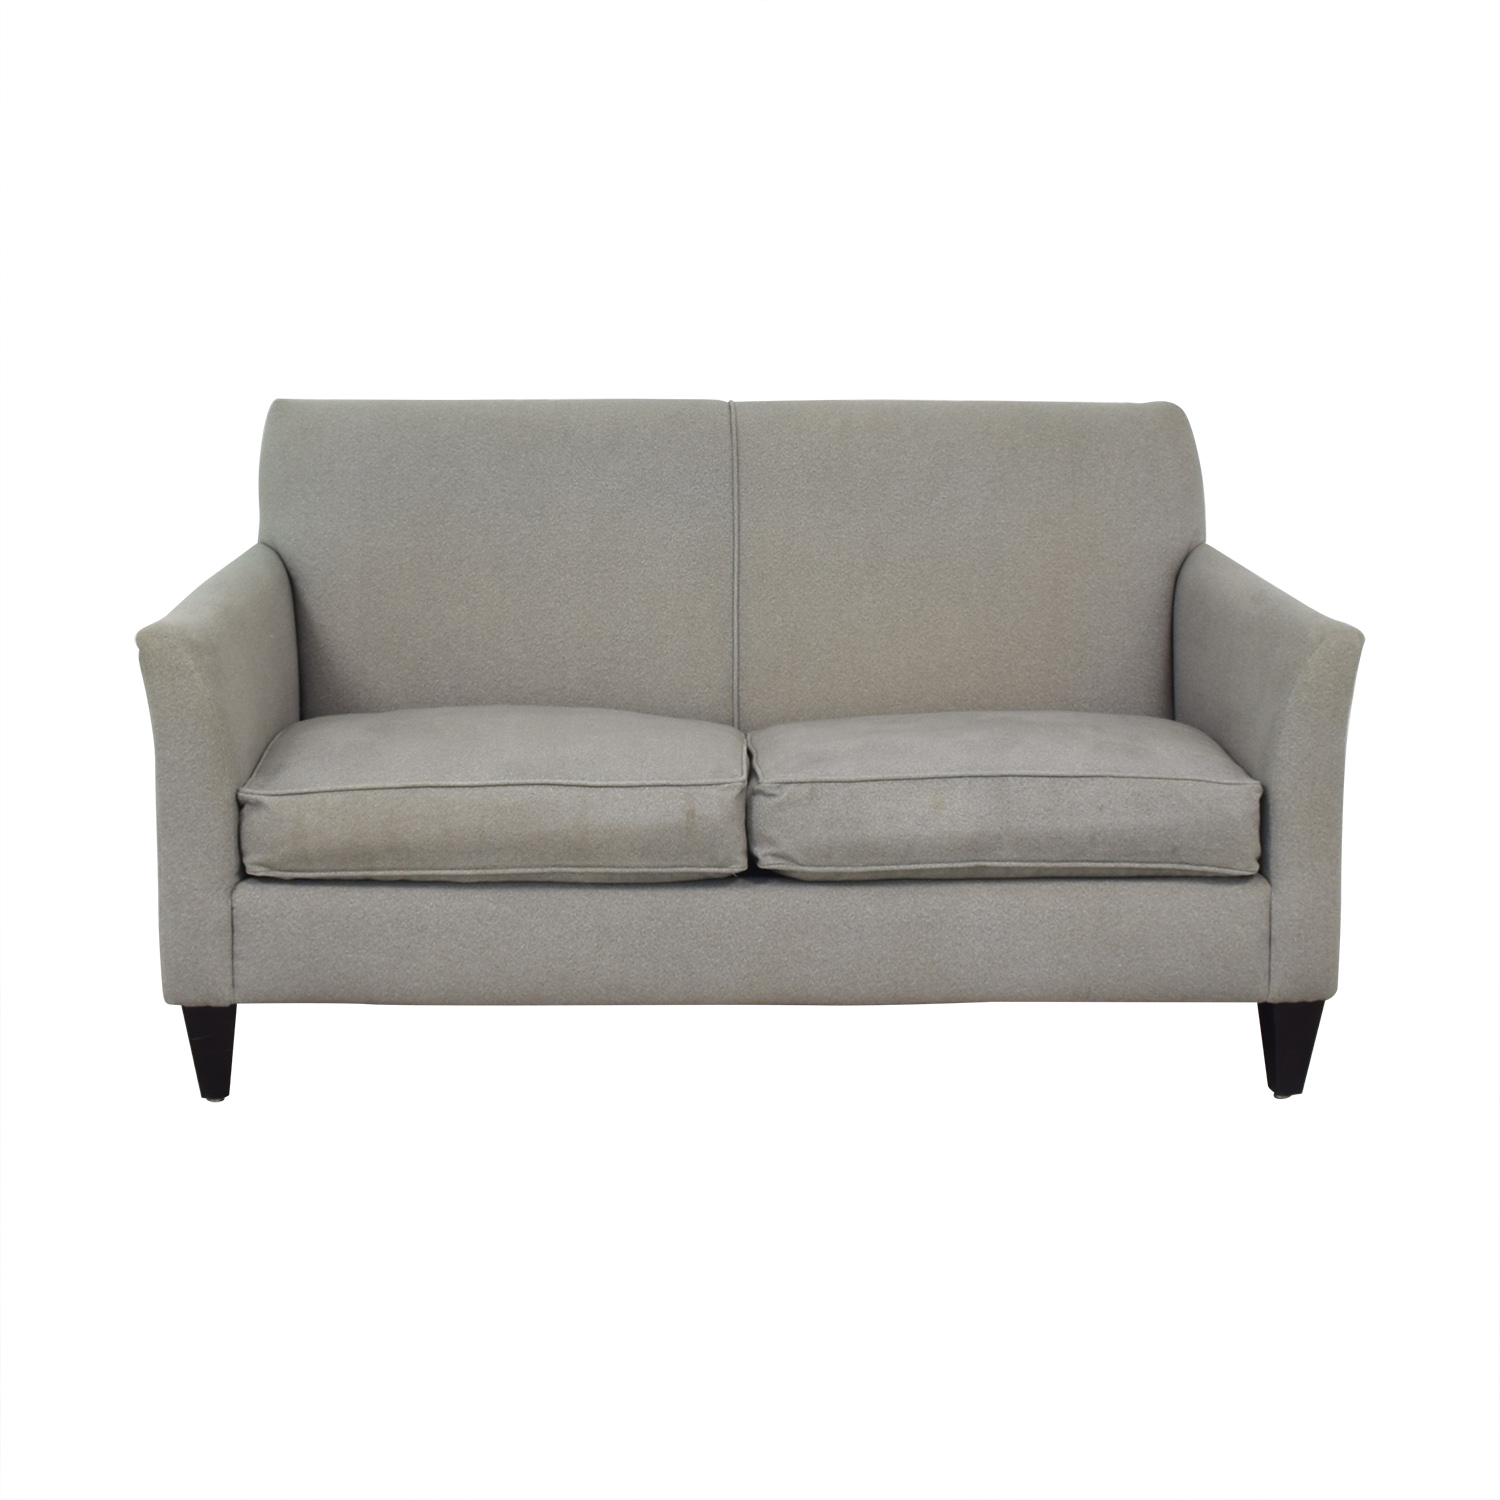 Rowe Furniture Rowe Loveseat grey